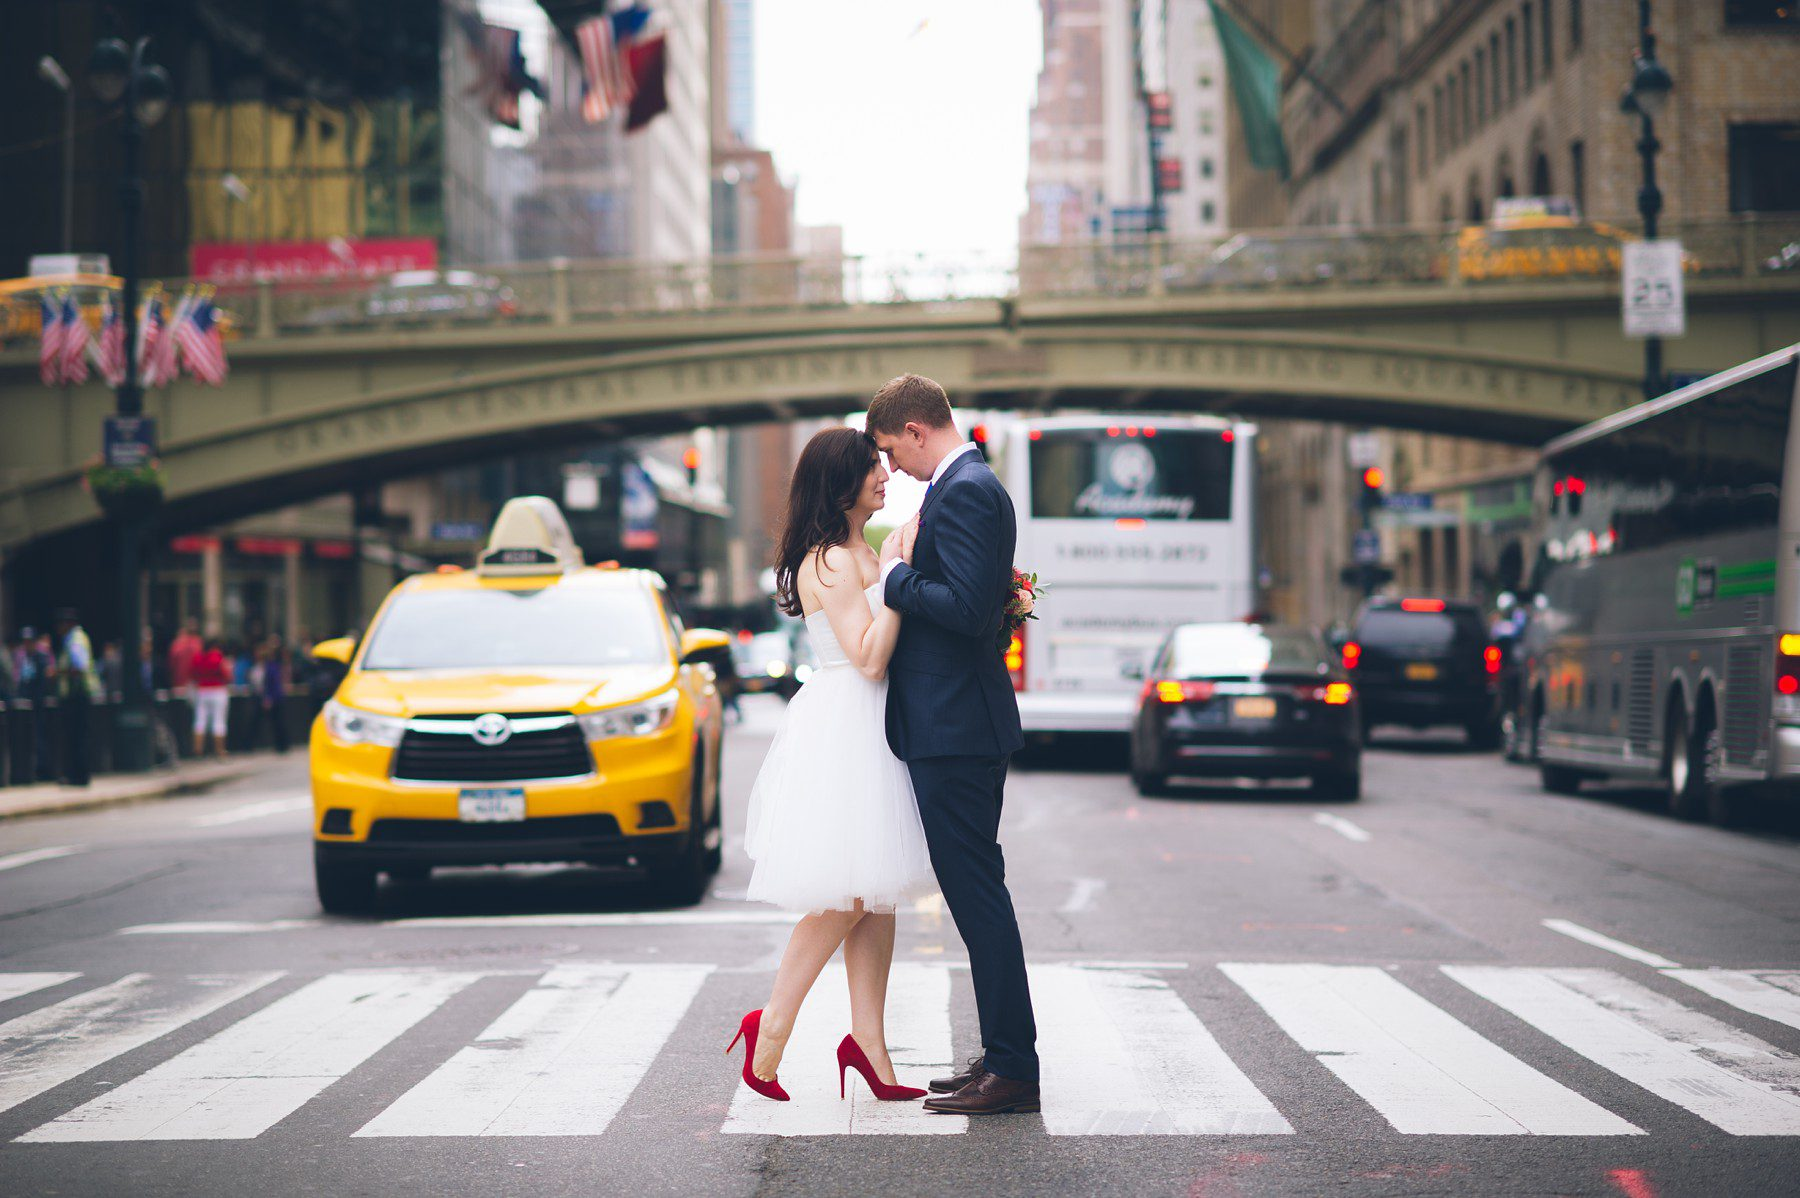 Hochzeit New York Getting Married At City Hall New York Hochzeit Im New